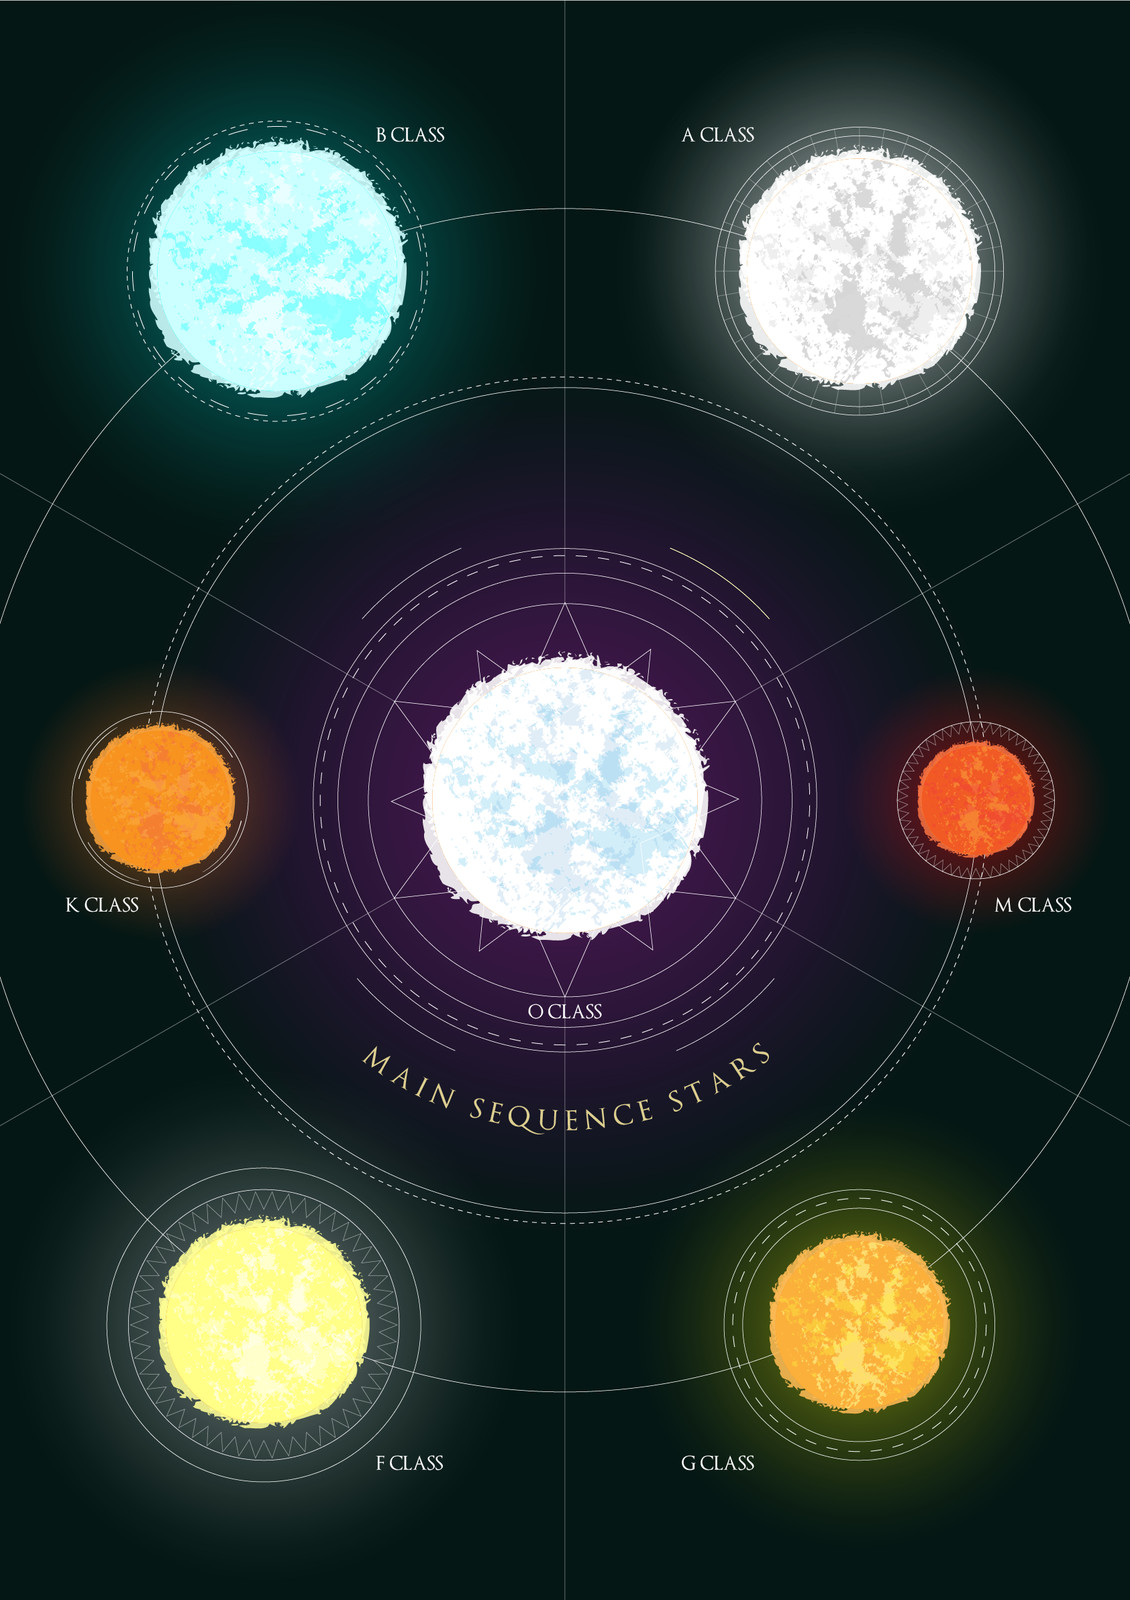 Main Sequence star poster